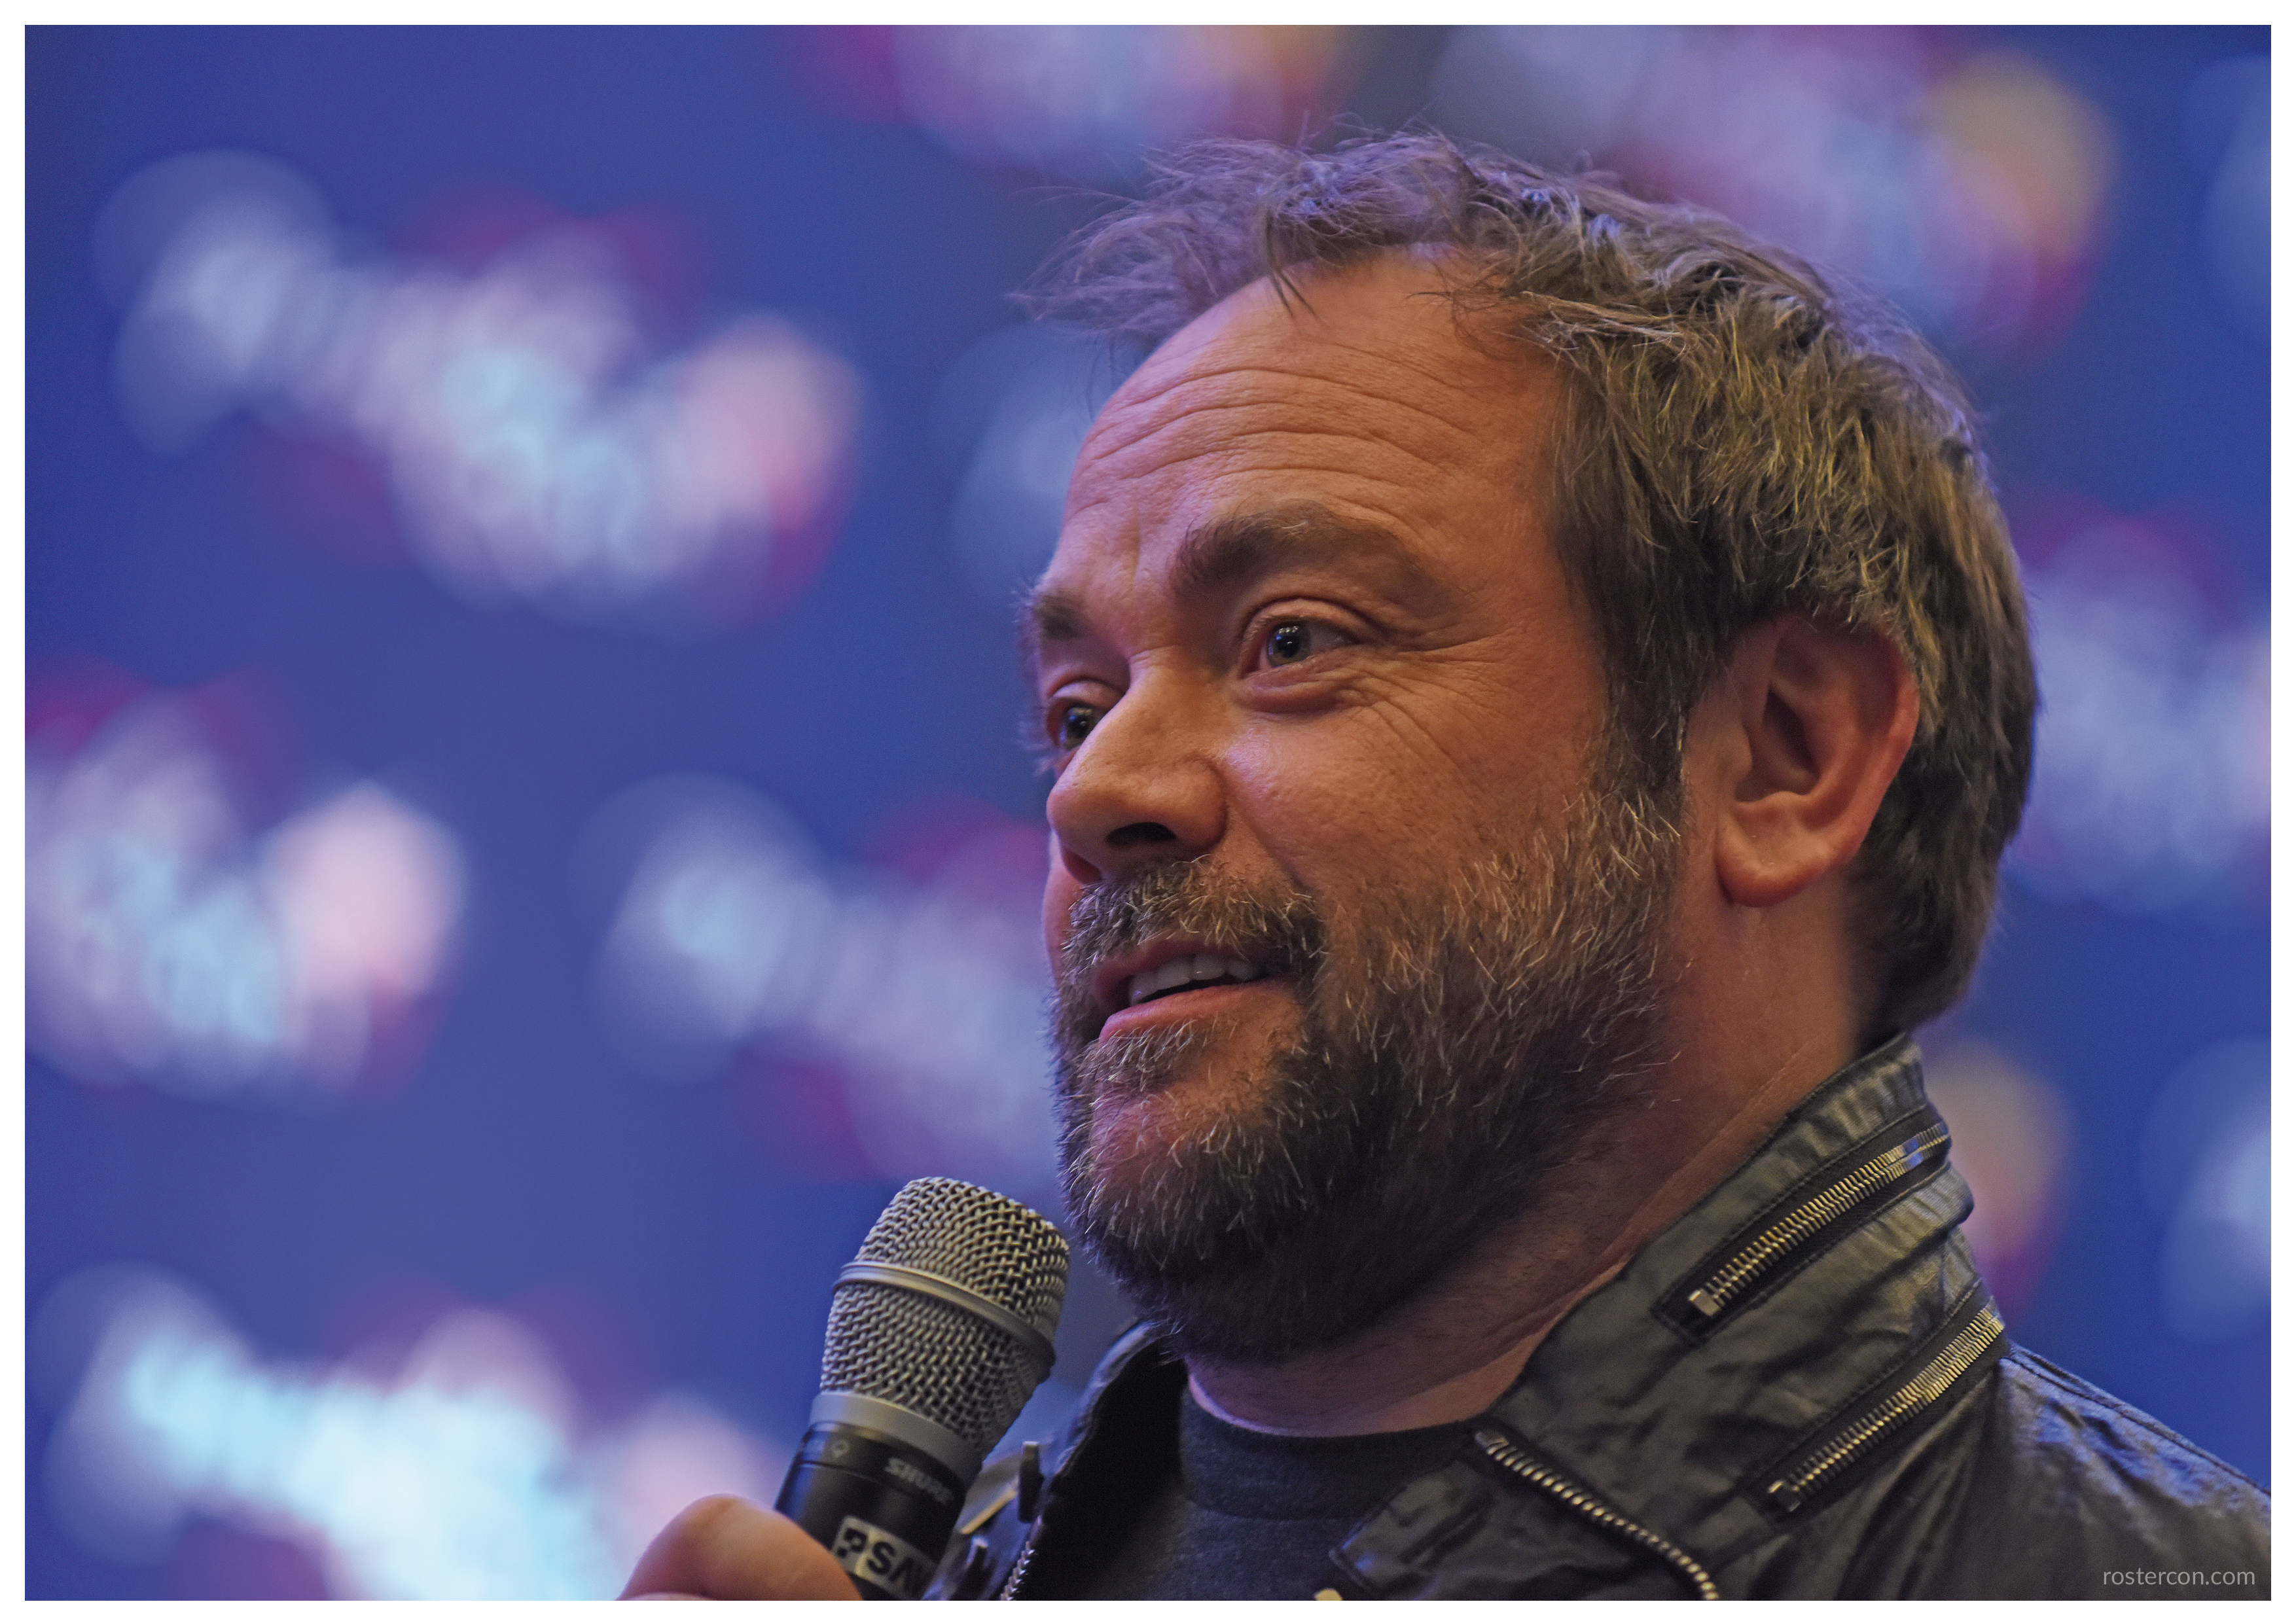 Mark Sheppard autograph support #3 – Supernatural | Roster Con